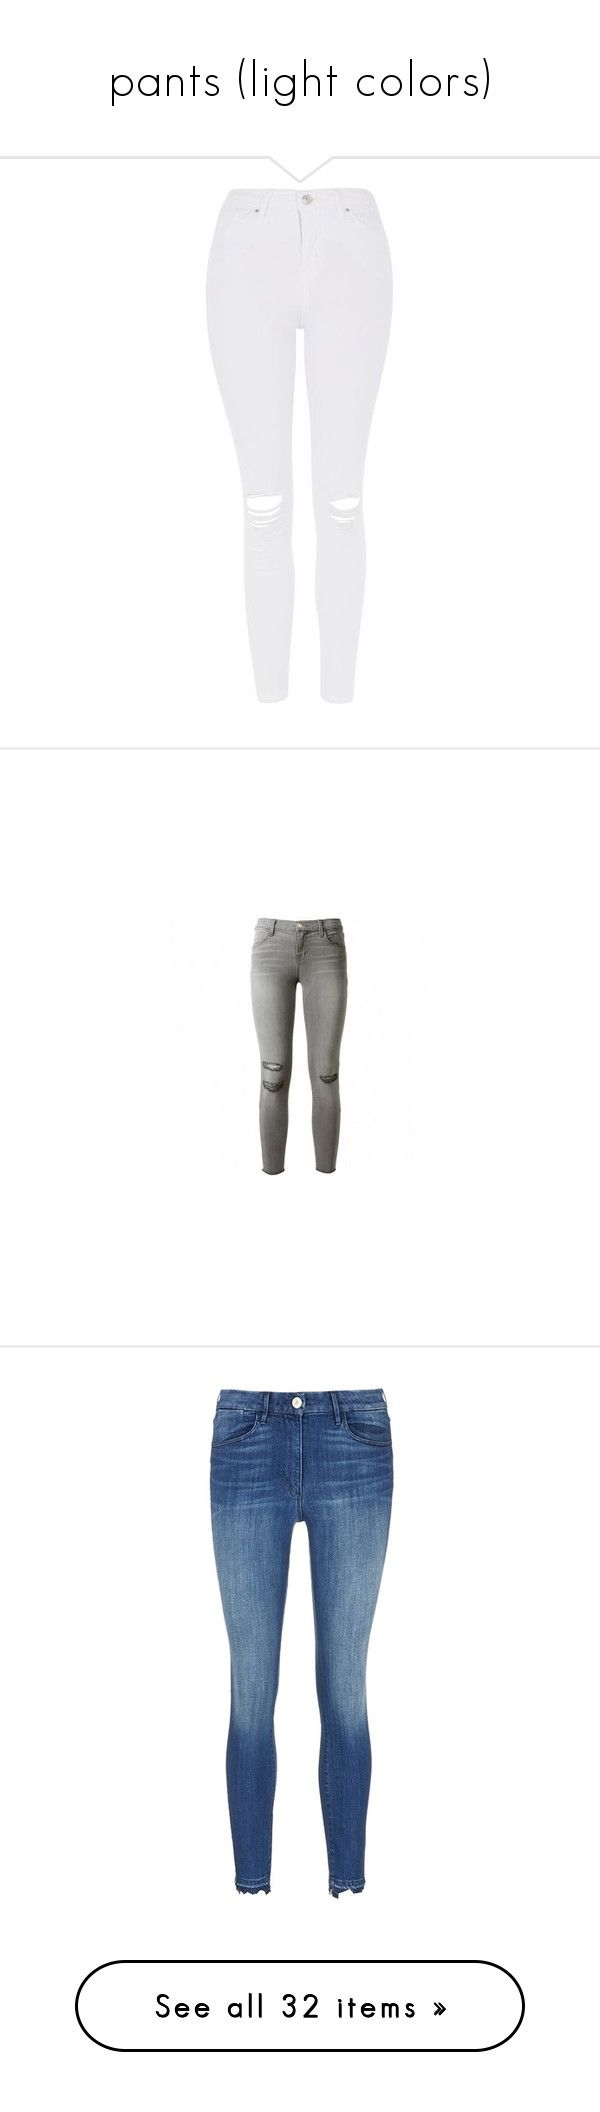 """""""pants (light colors)"""" by gemmabsw ❤ liked on Polyvore featuring jeans, pants, bottoms, topshop, high waisted jeans, white distressed jeans, high-waisted jeans, high waisted ripped jeans, white high waisted jeans and pantalones"""